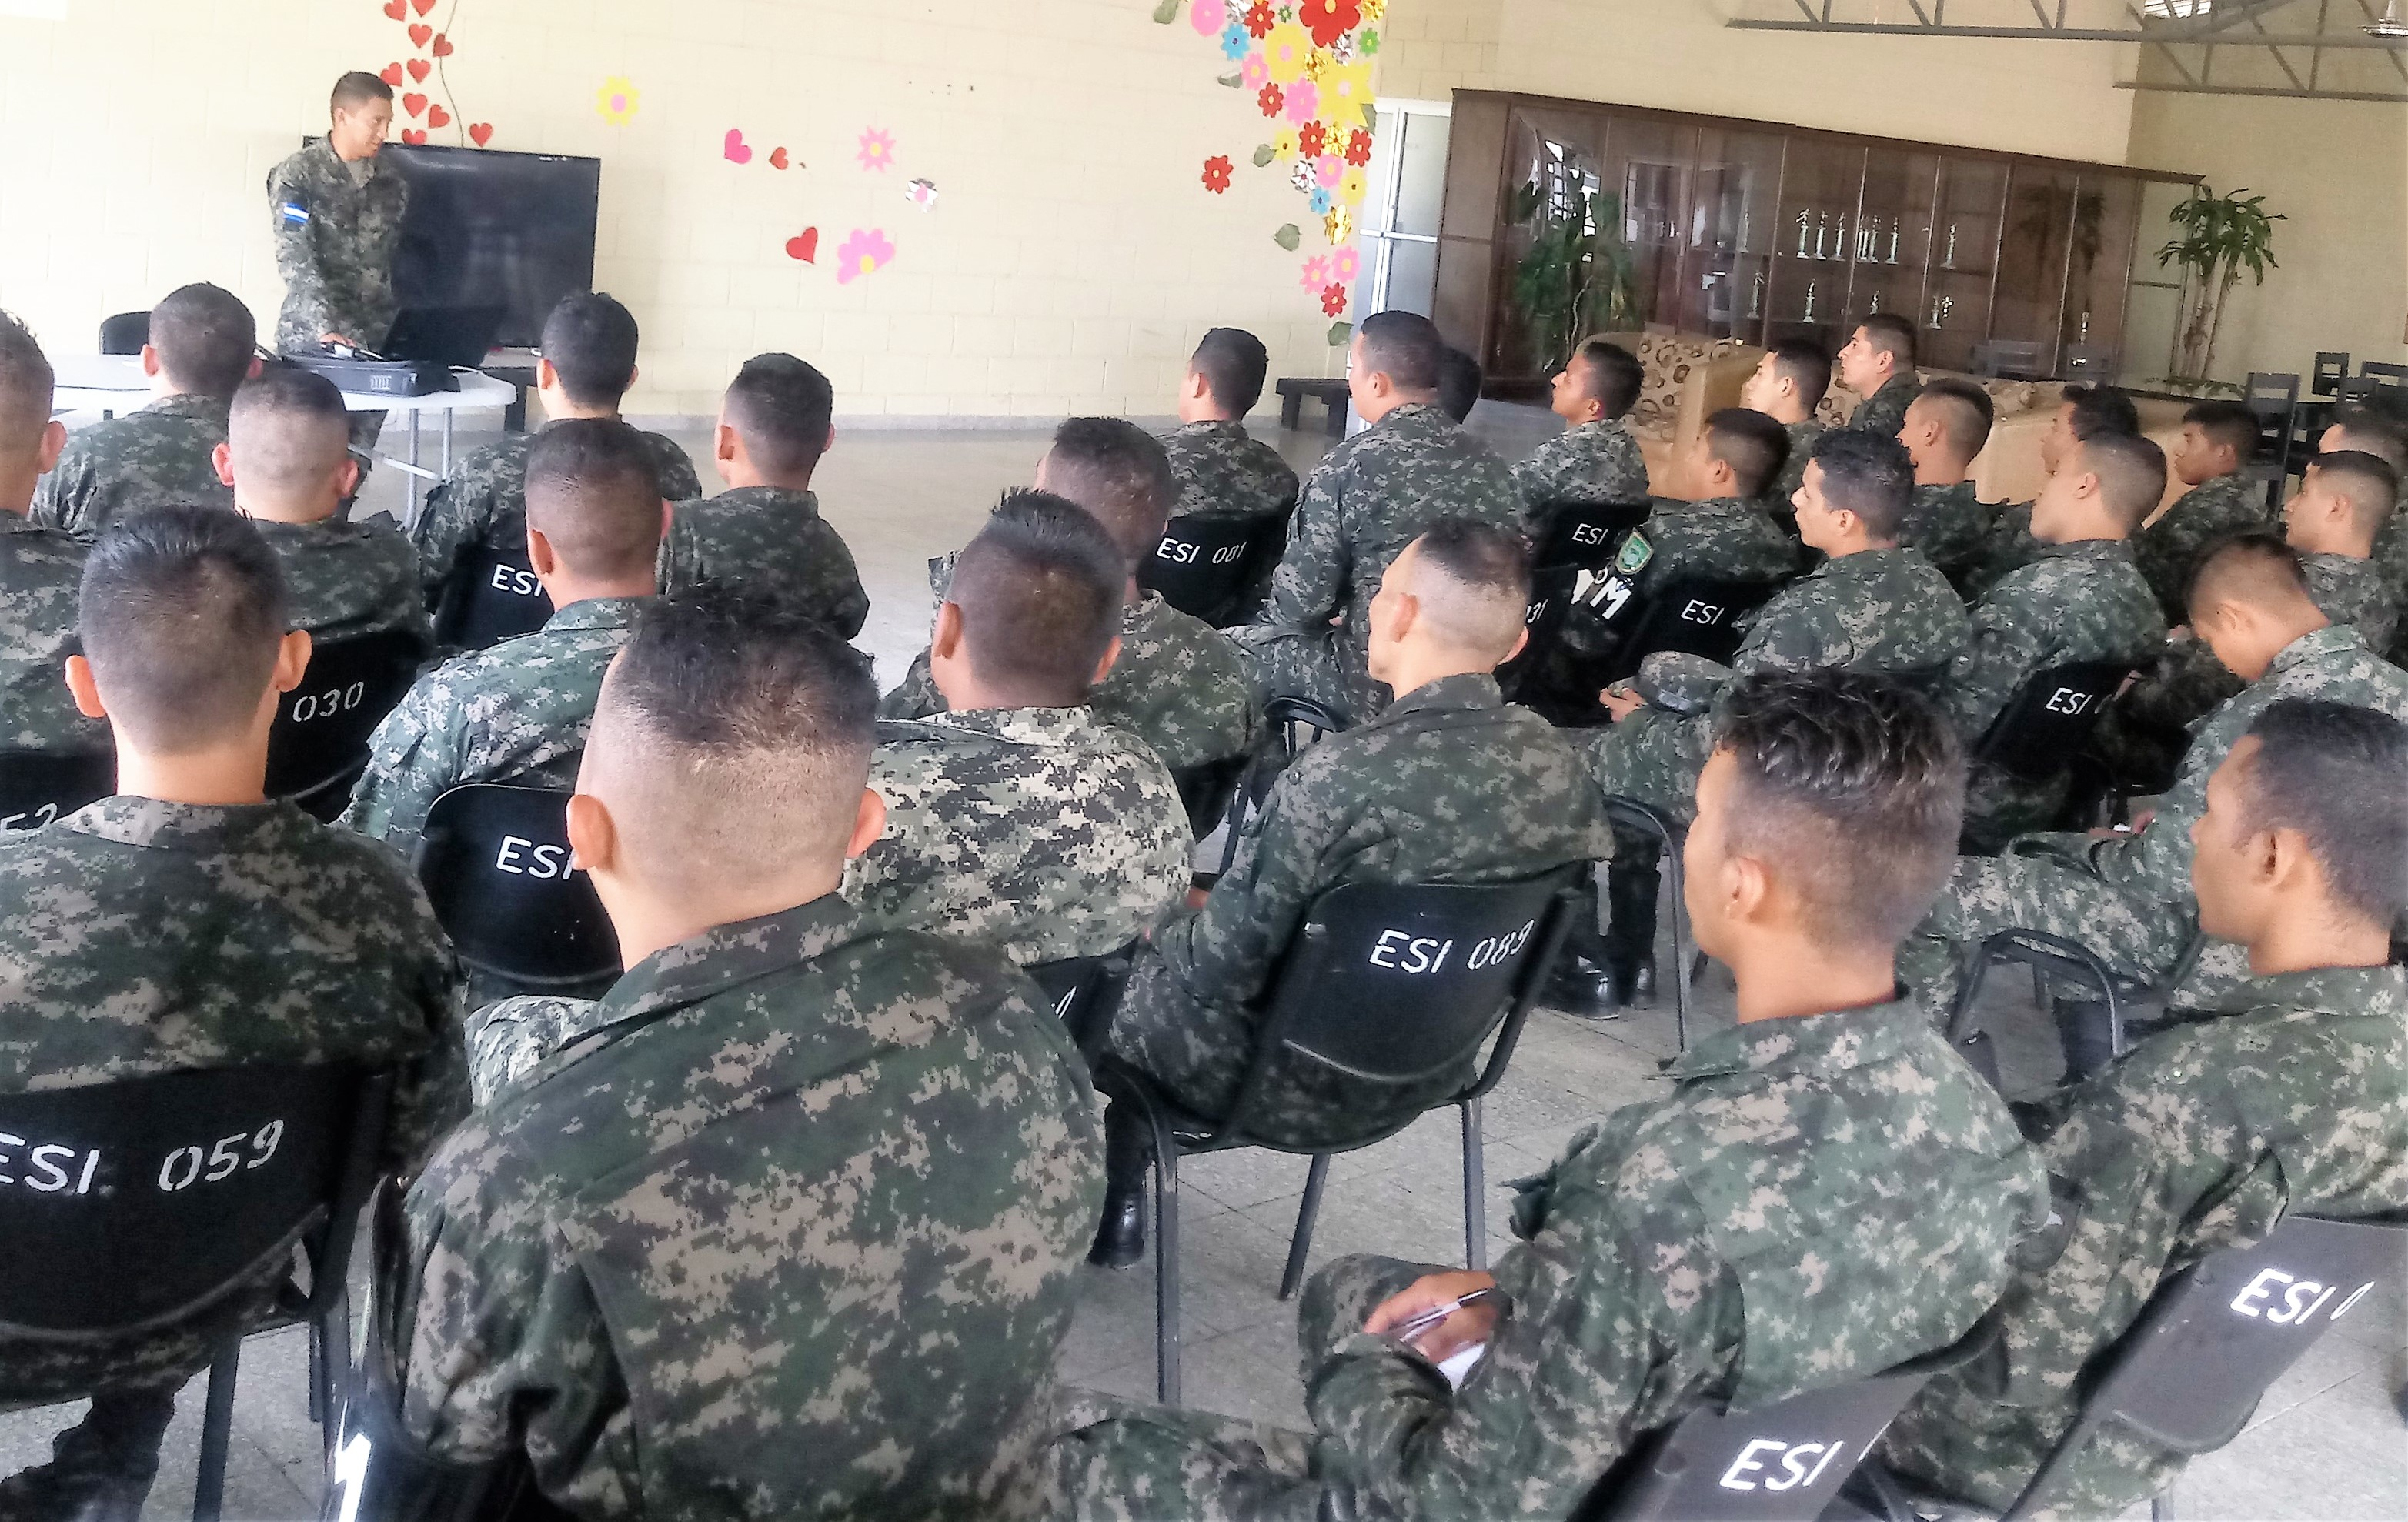 Honduran Military Police Trains in Human Rights